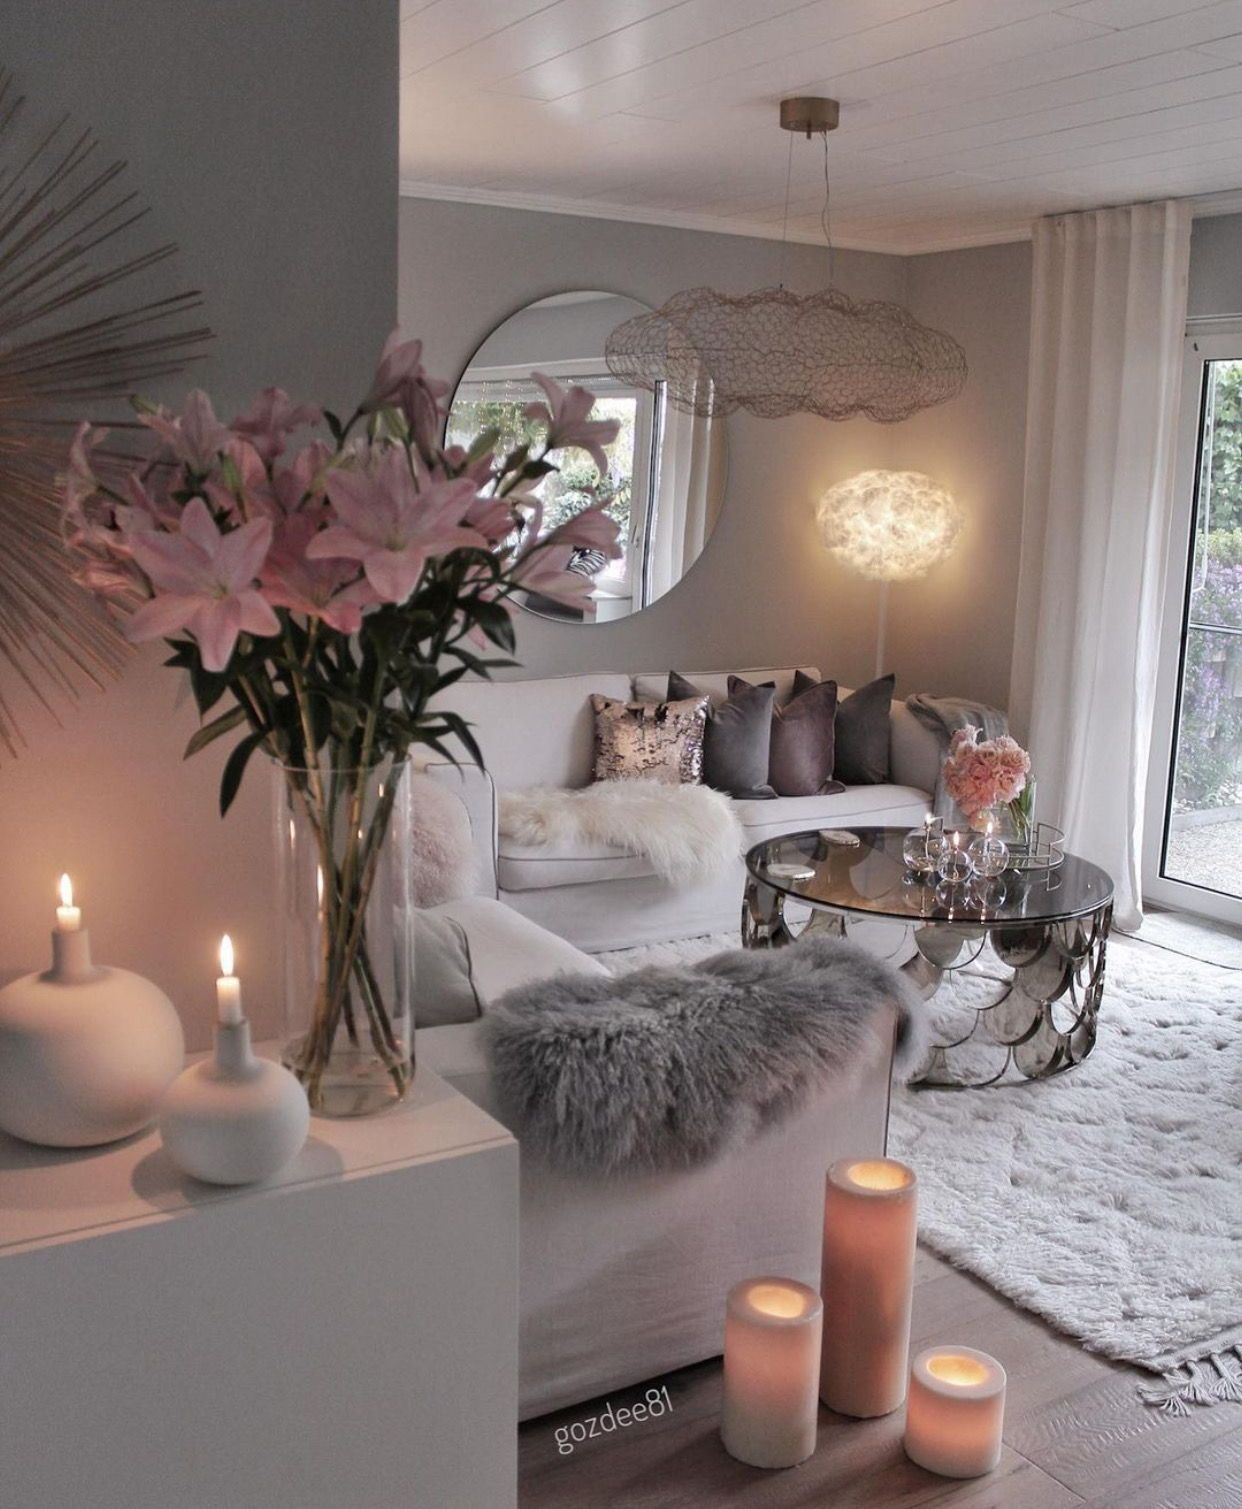 9 Budget Friendly Home Decor Hacks To Make Your Home Look Modern Zahrah Rose In 2021 Romantic Living Room Pink Living Room Decor Living Room Decor Inspiration Living room decor accessories